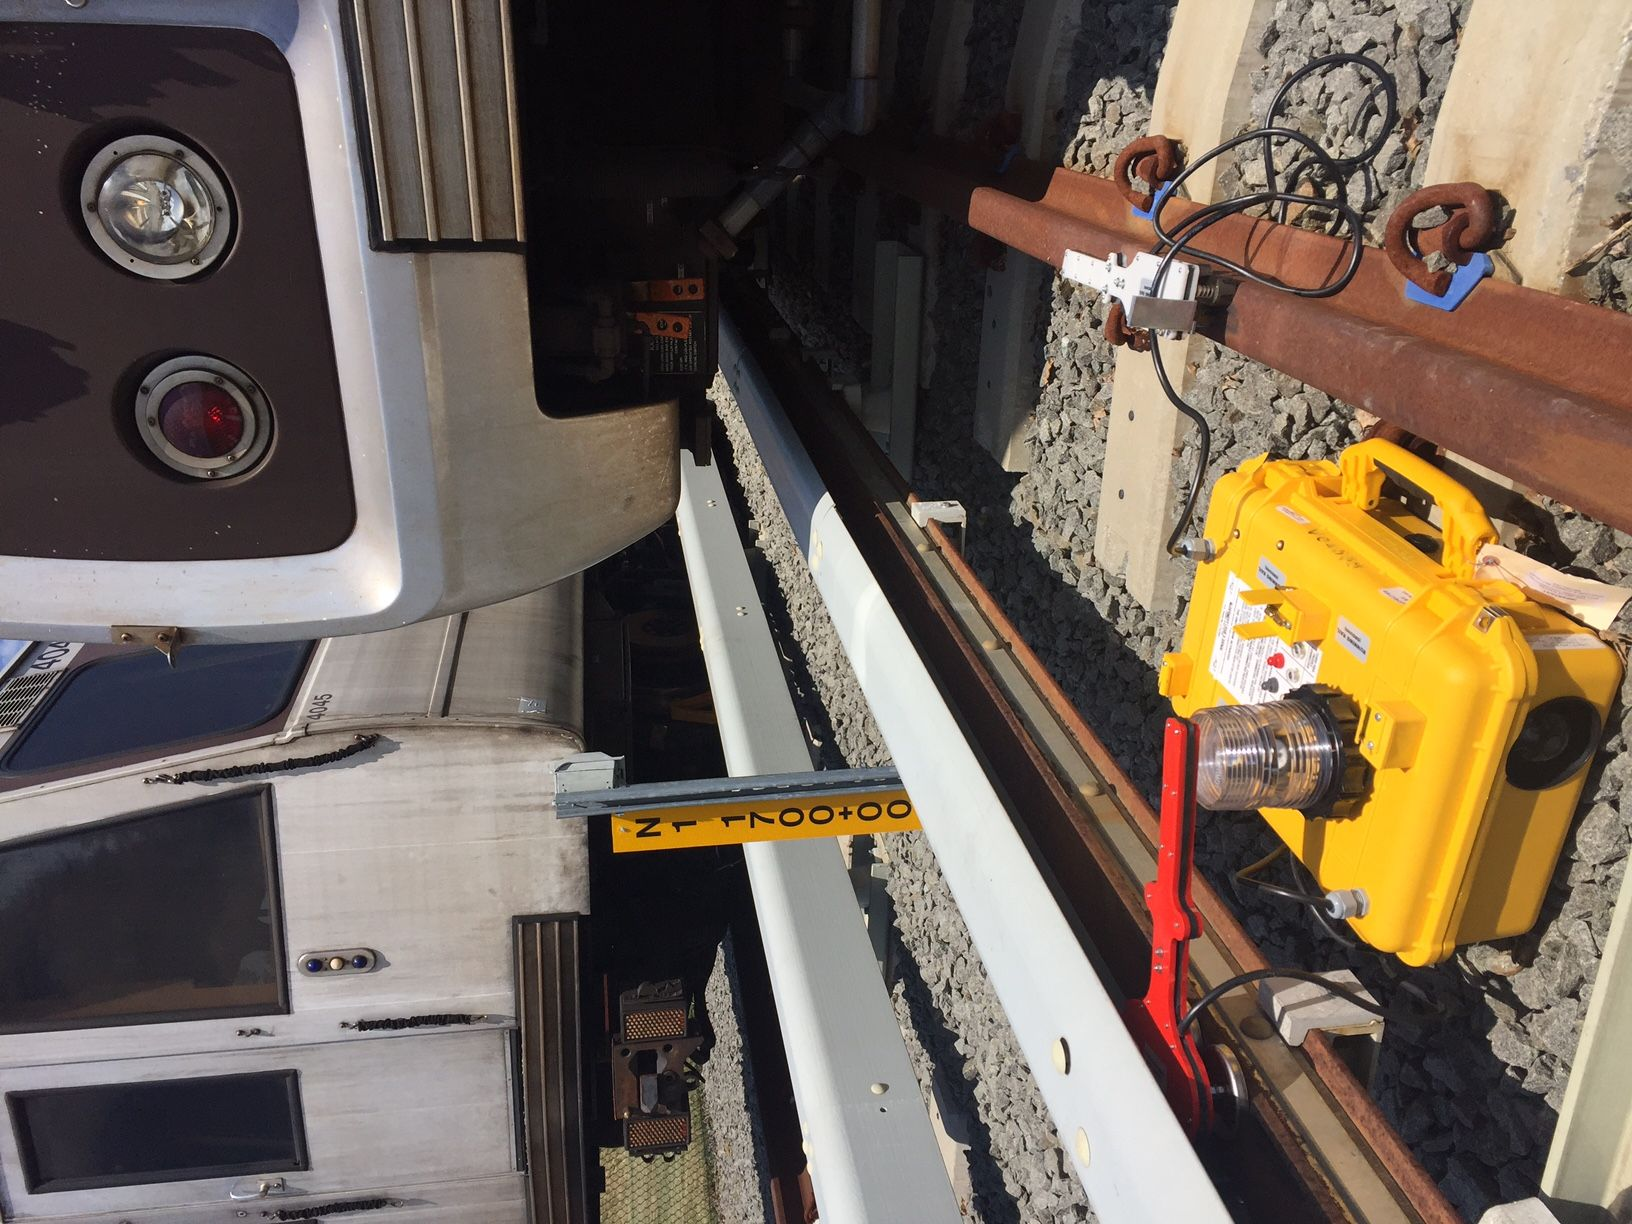 Rescue tools include new hydraulic jacks capable of lifting rail cars. The yellow boxes are for testing whether there is power to the third rail. (WTOP/John Aaron)